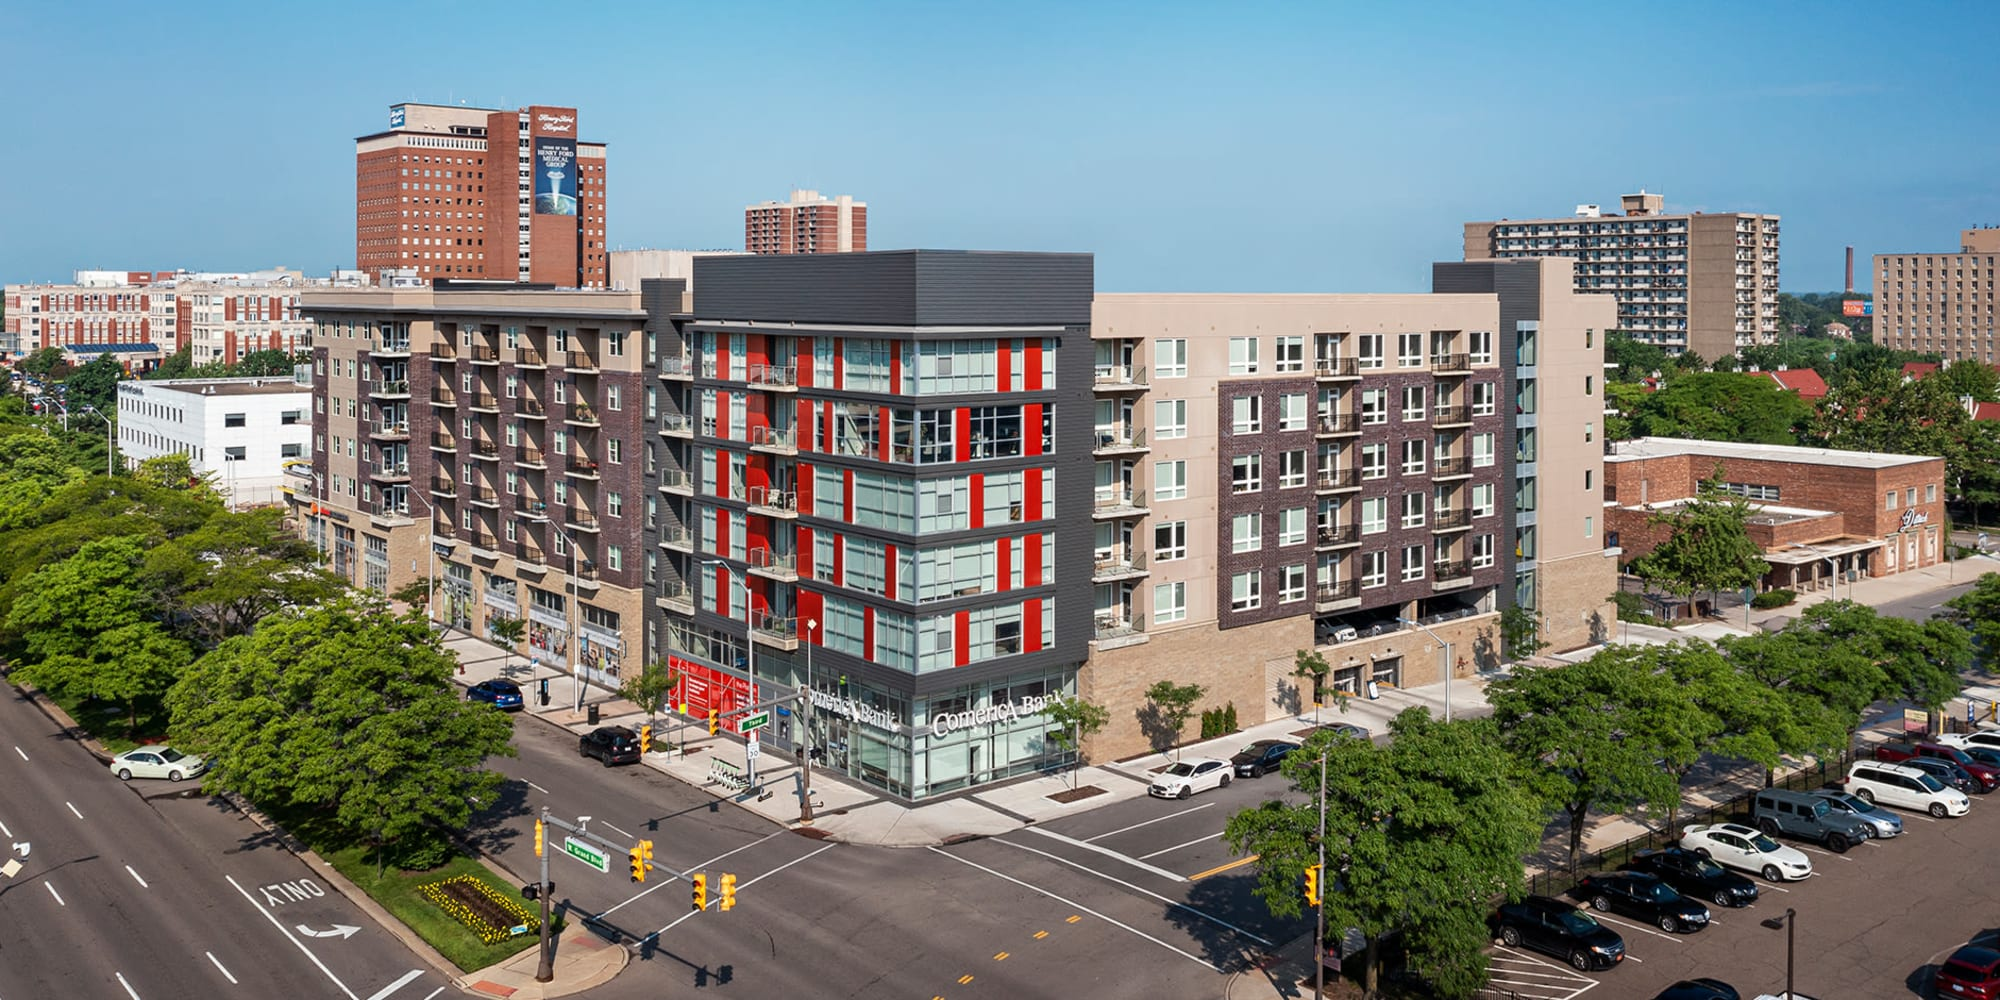 Apartments at The Boulevard in Detroit, Michigan